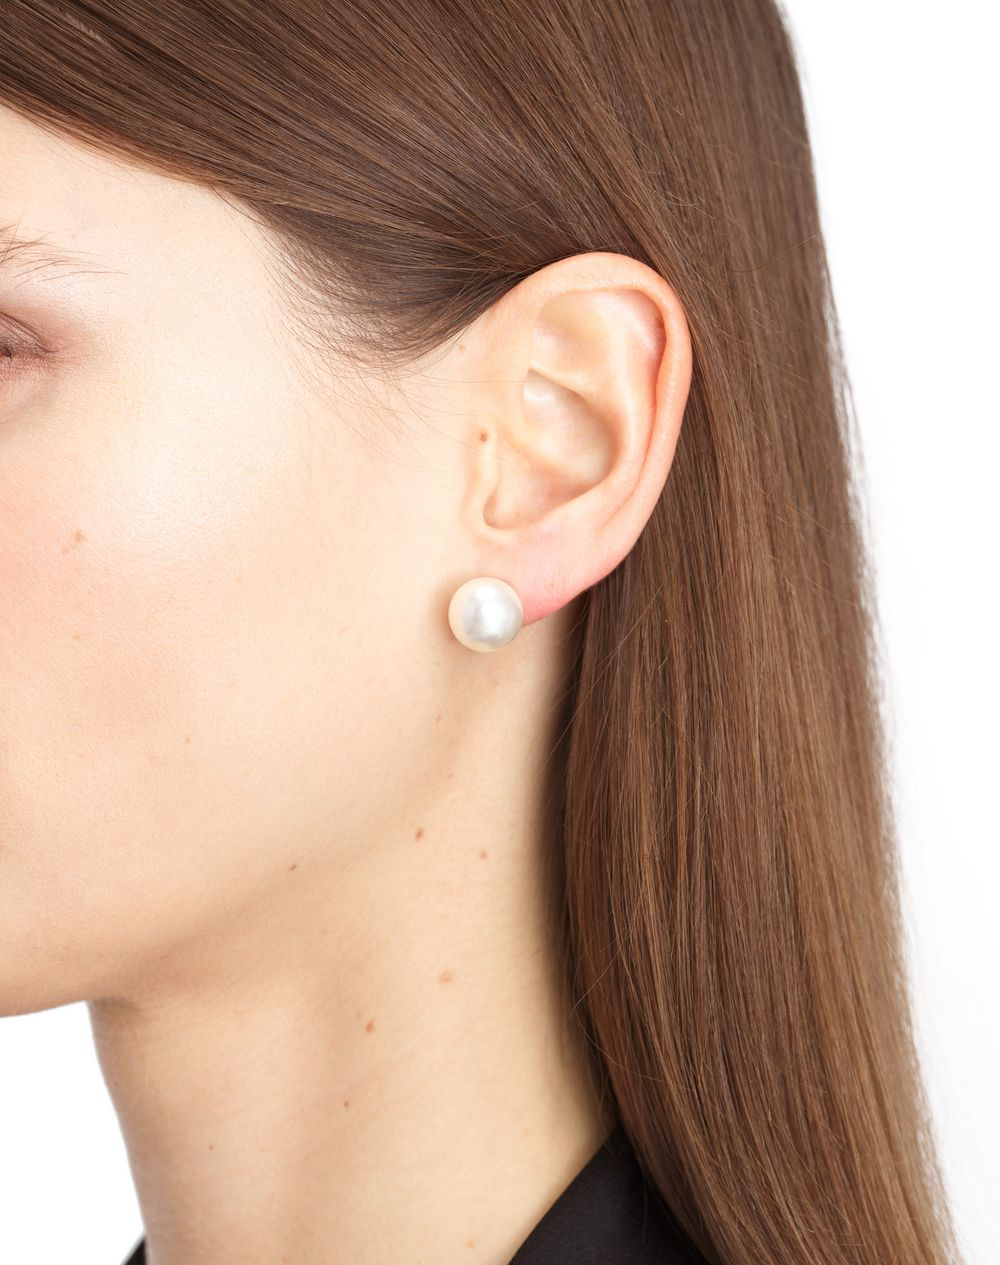 BIRD EARRINGS - Lanvin